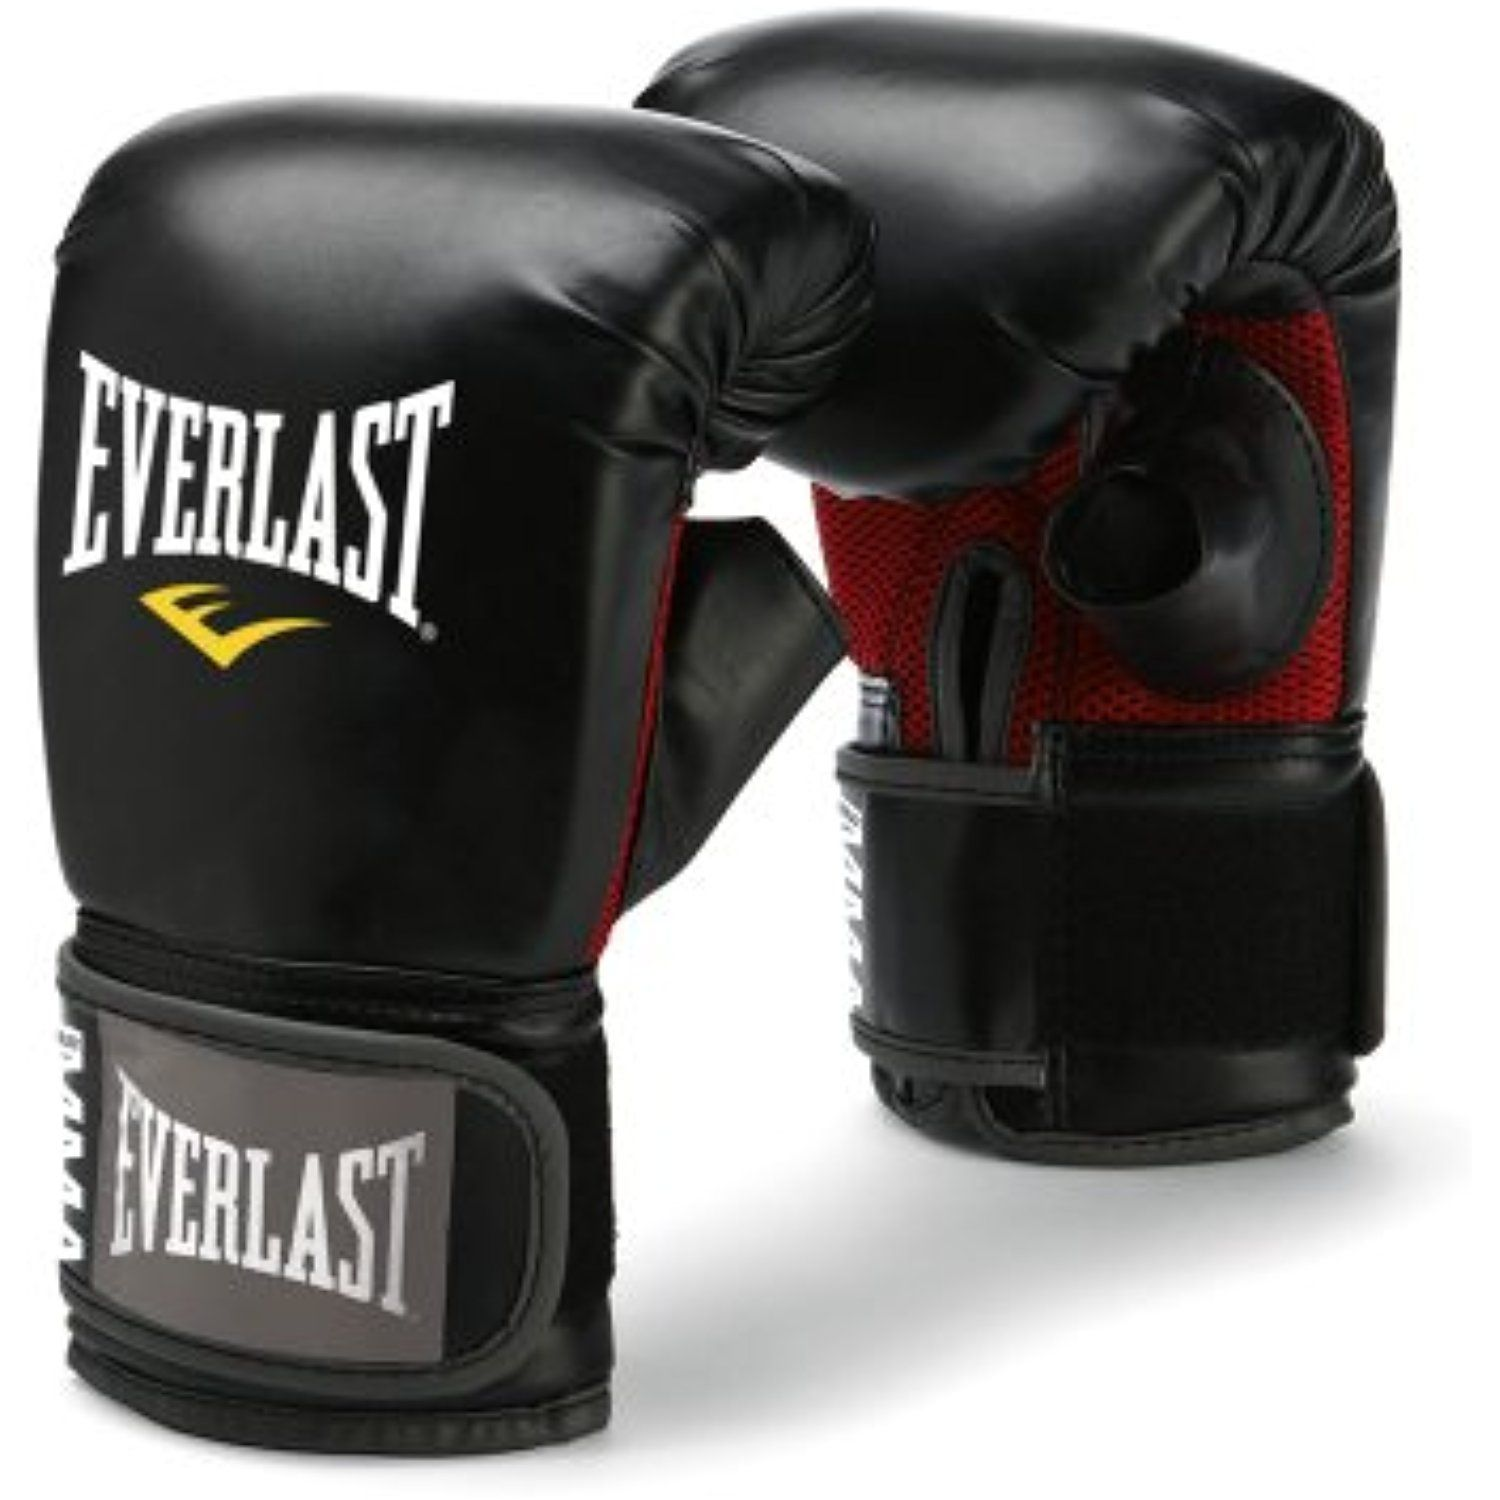 Everlast mixed martial arts heavy bag gloves you can